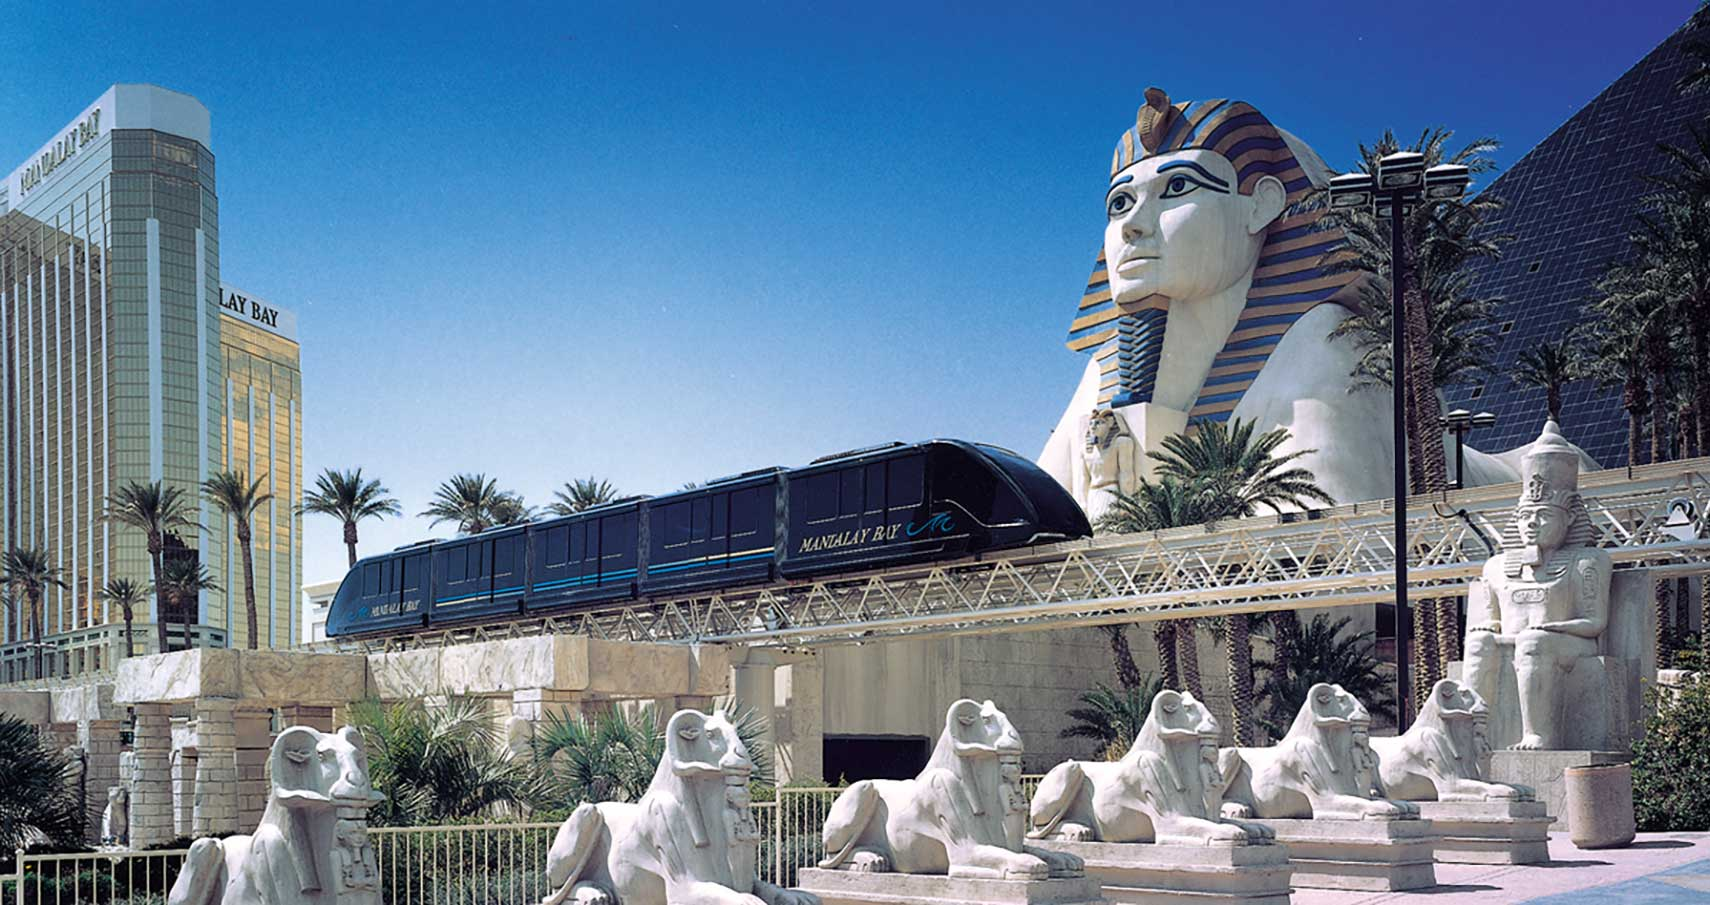 Mandalay Bay train in Las Vegas